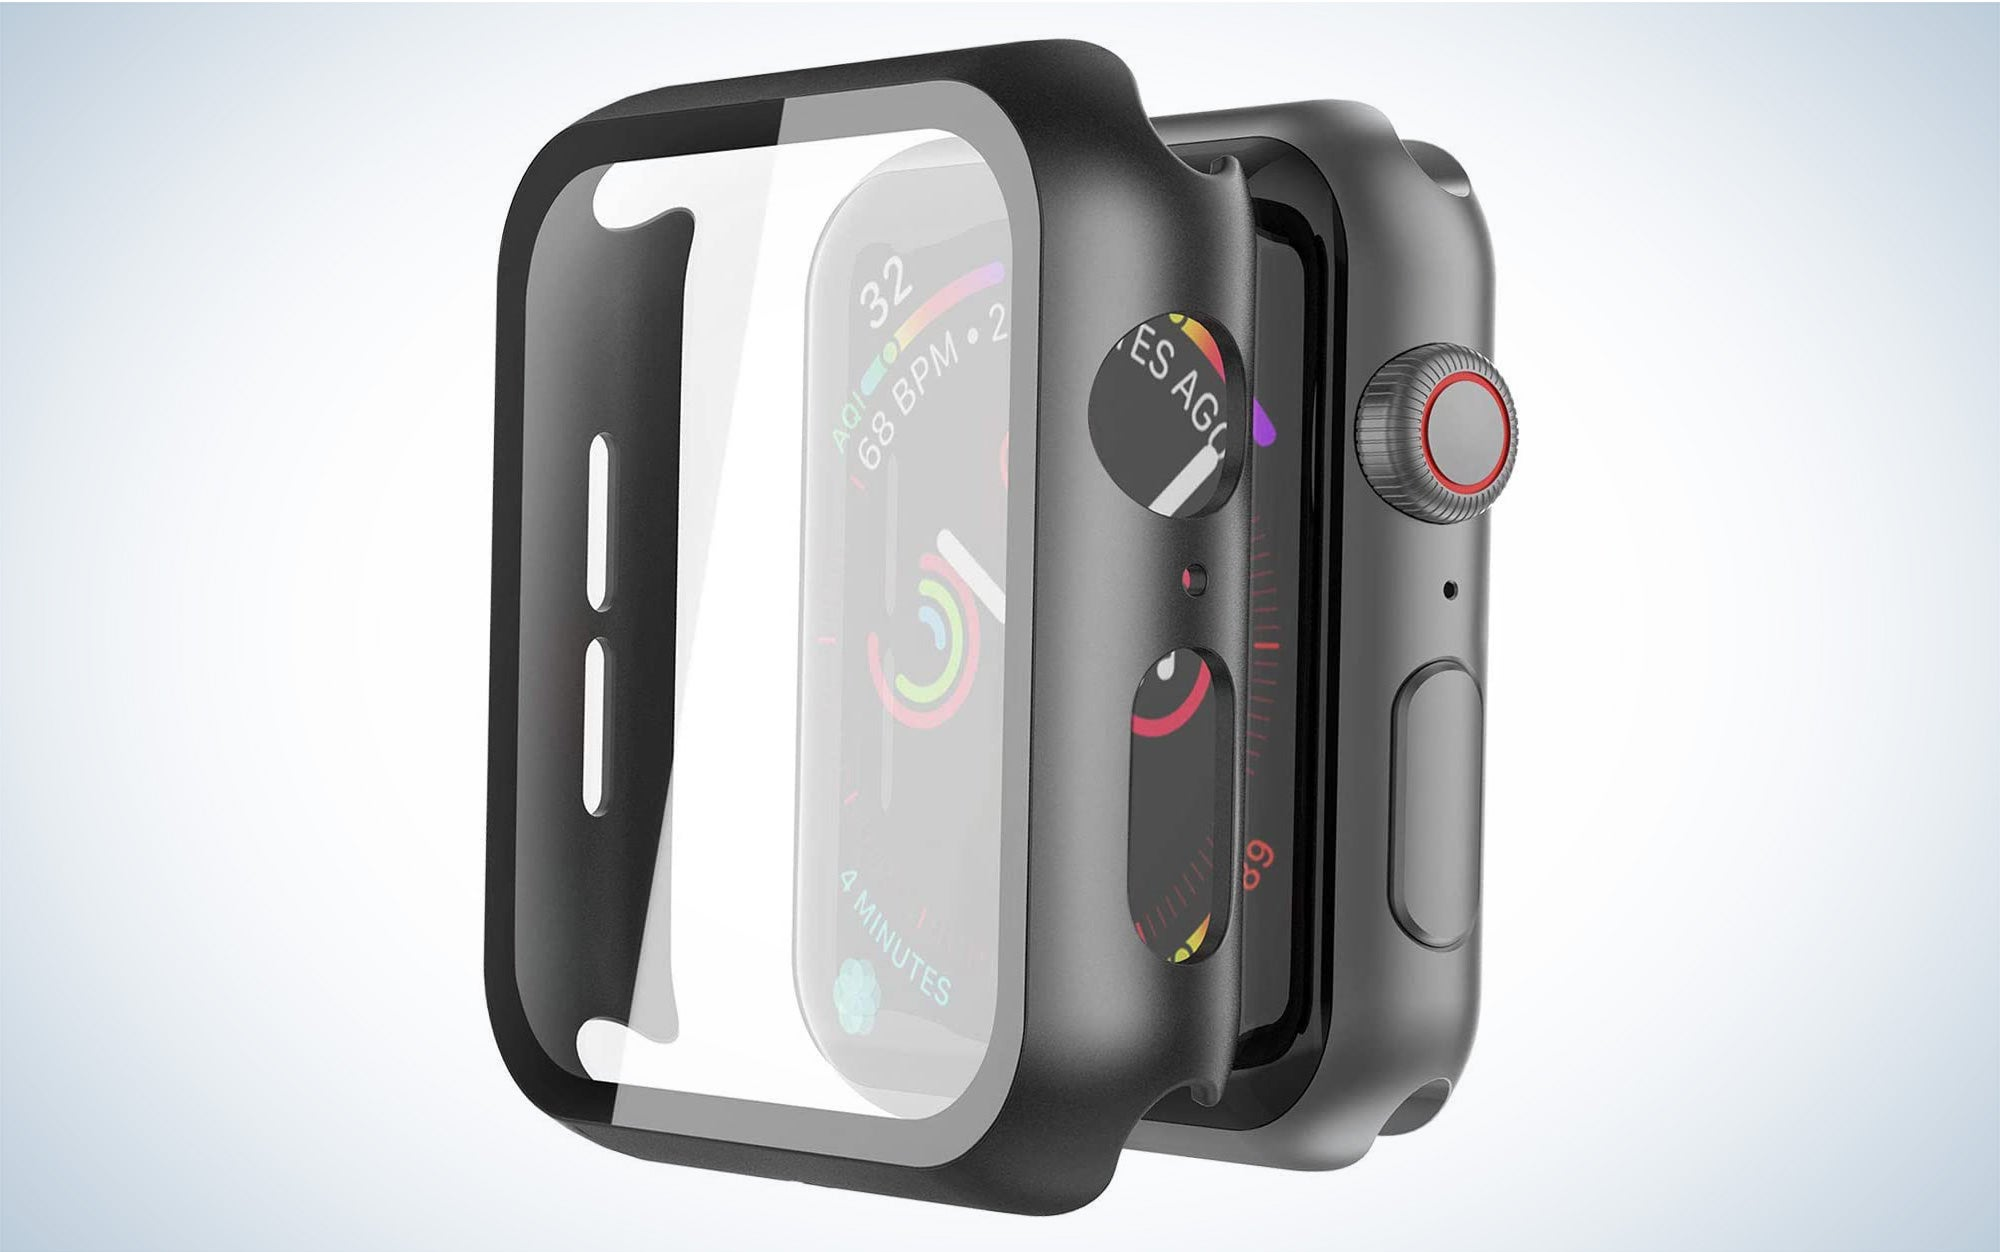 Mixsi is our pick for the best Apple Watch case